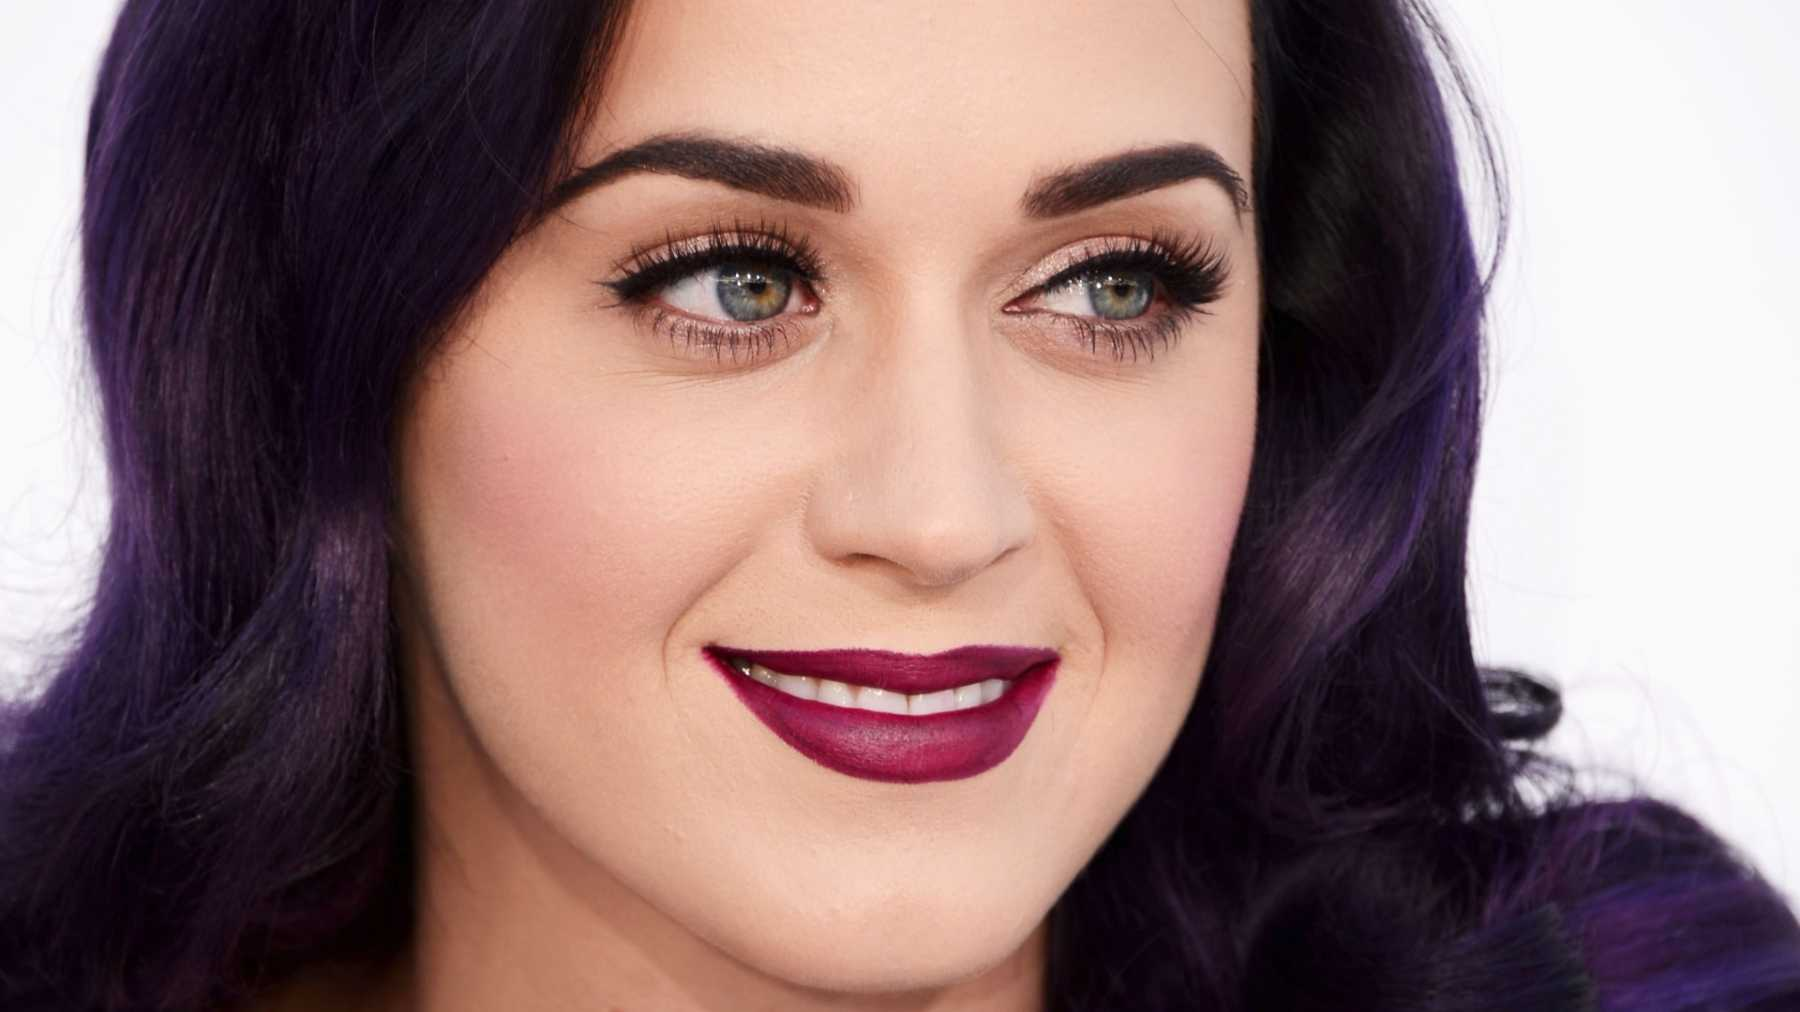 From Teenage Dream To Adult Reality: How Katy Perry's Divorce Inspired Her New Album